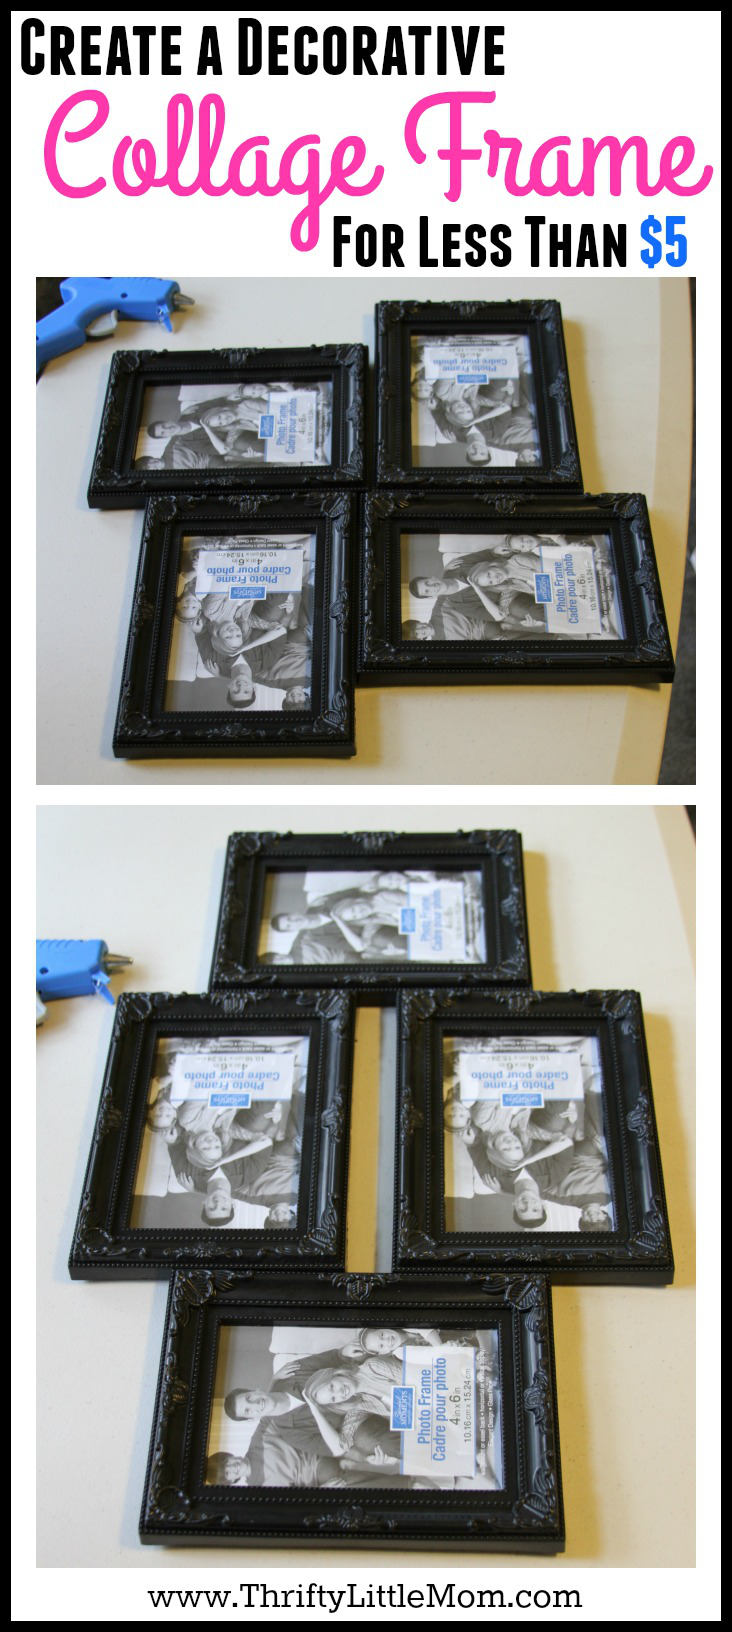 Create a decorative collage frame for less than $5